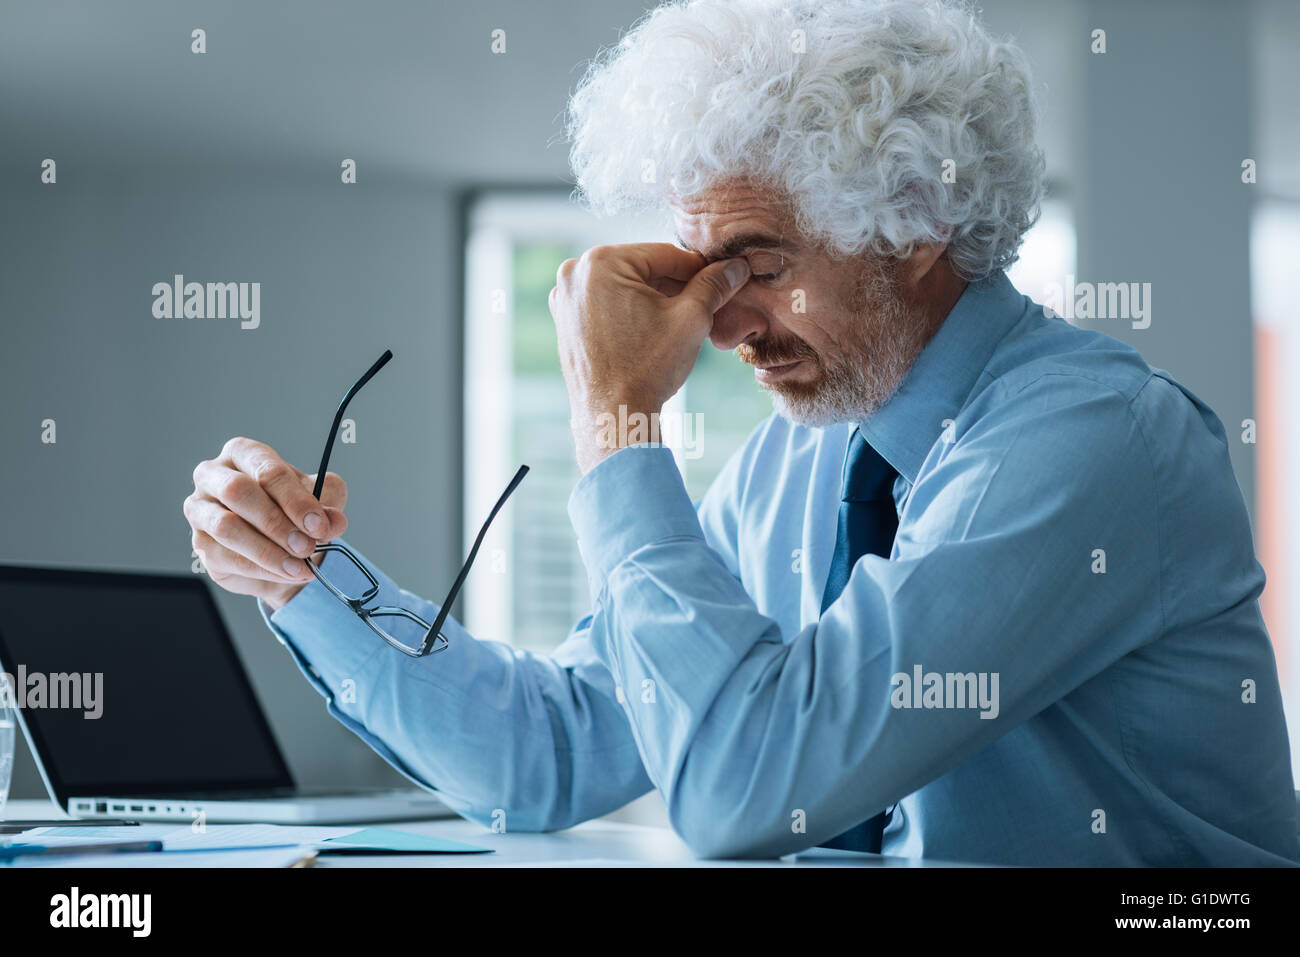 Stressed exhausted businessman sitting at office desk, failure and loss concept - Stock Image